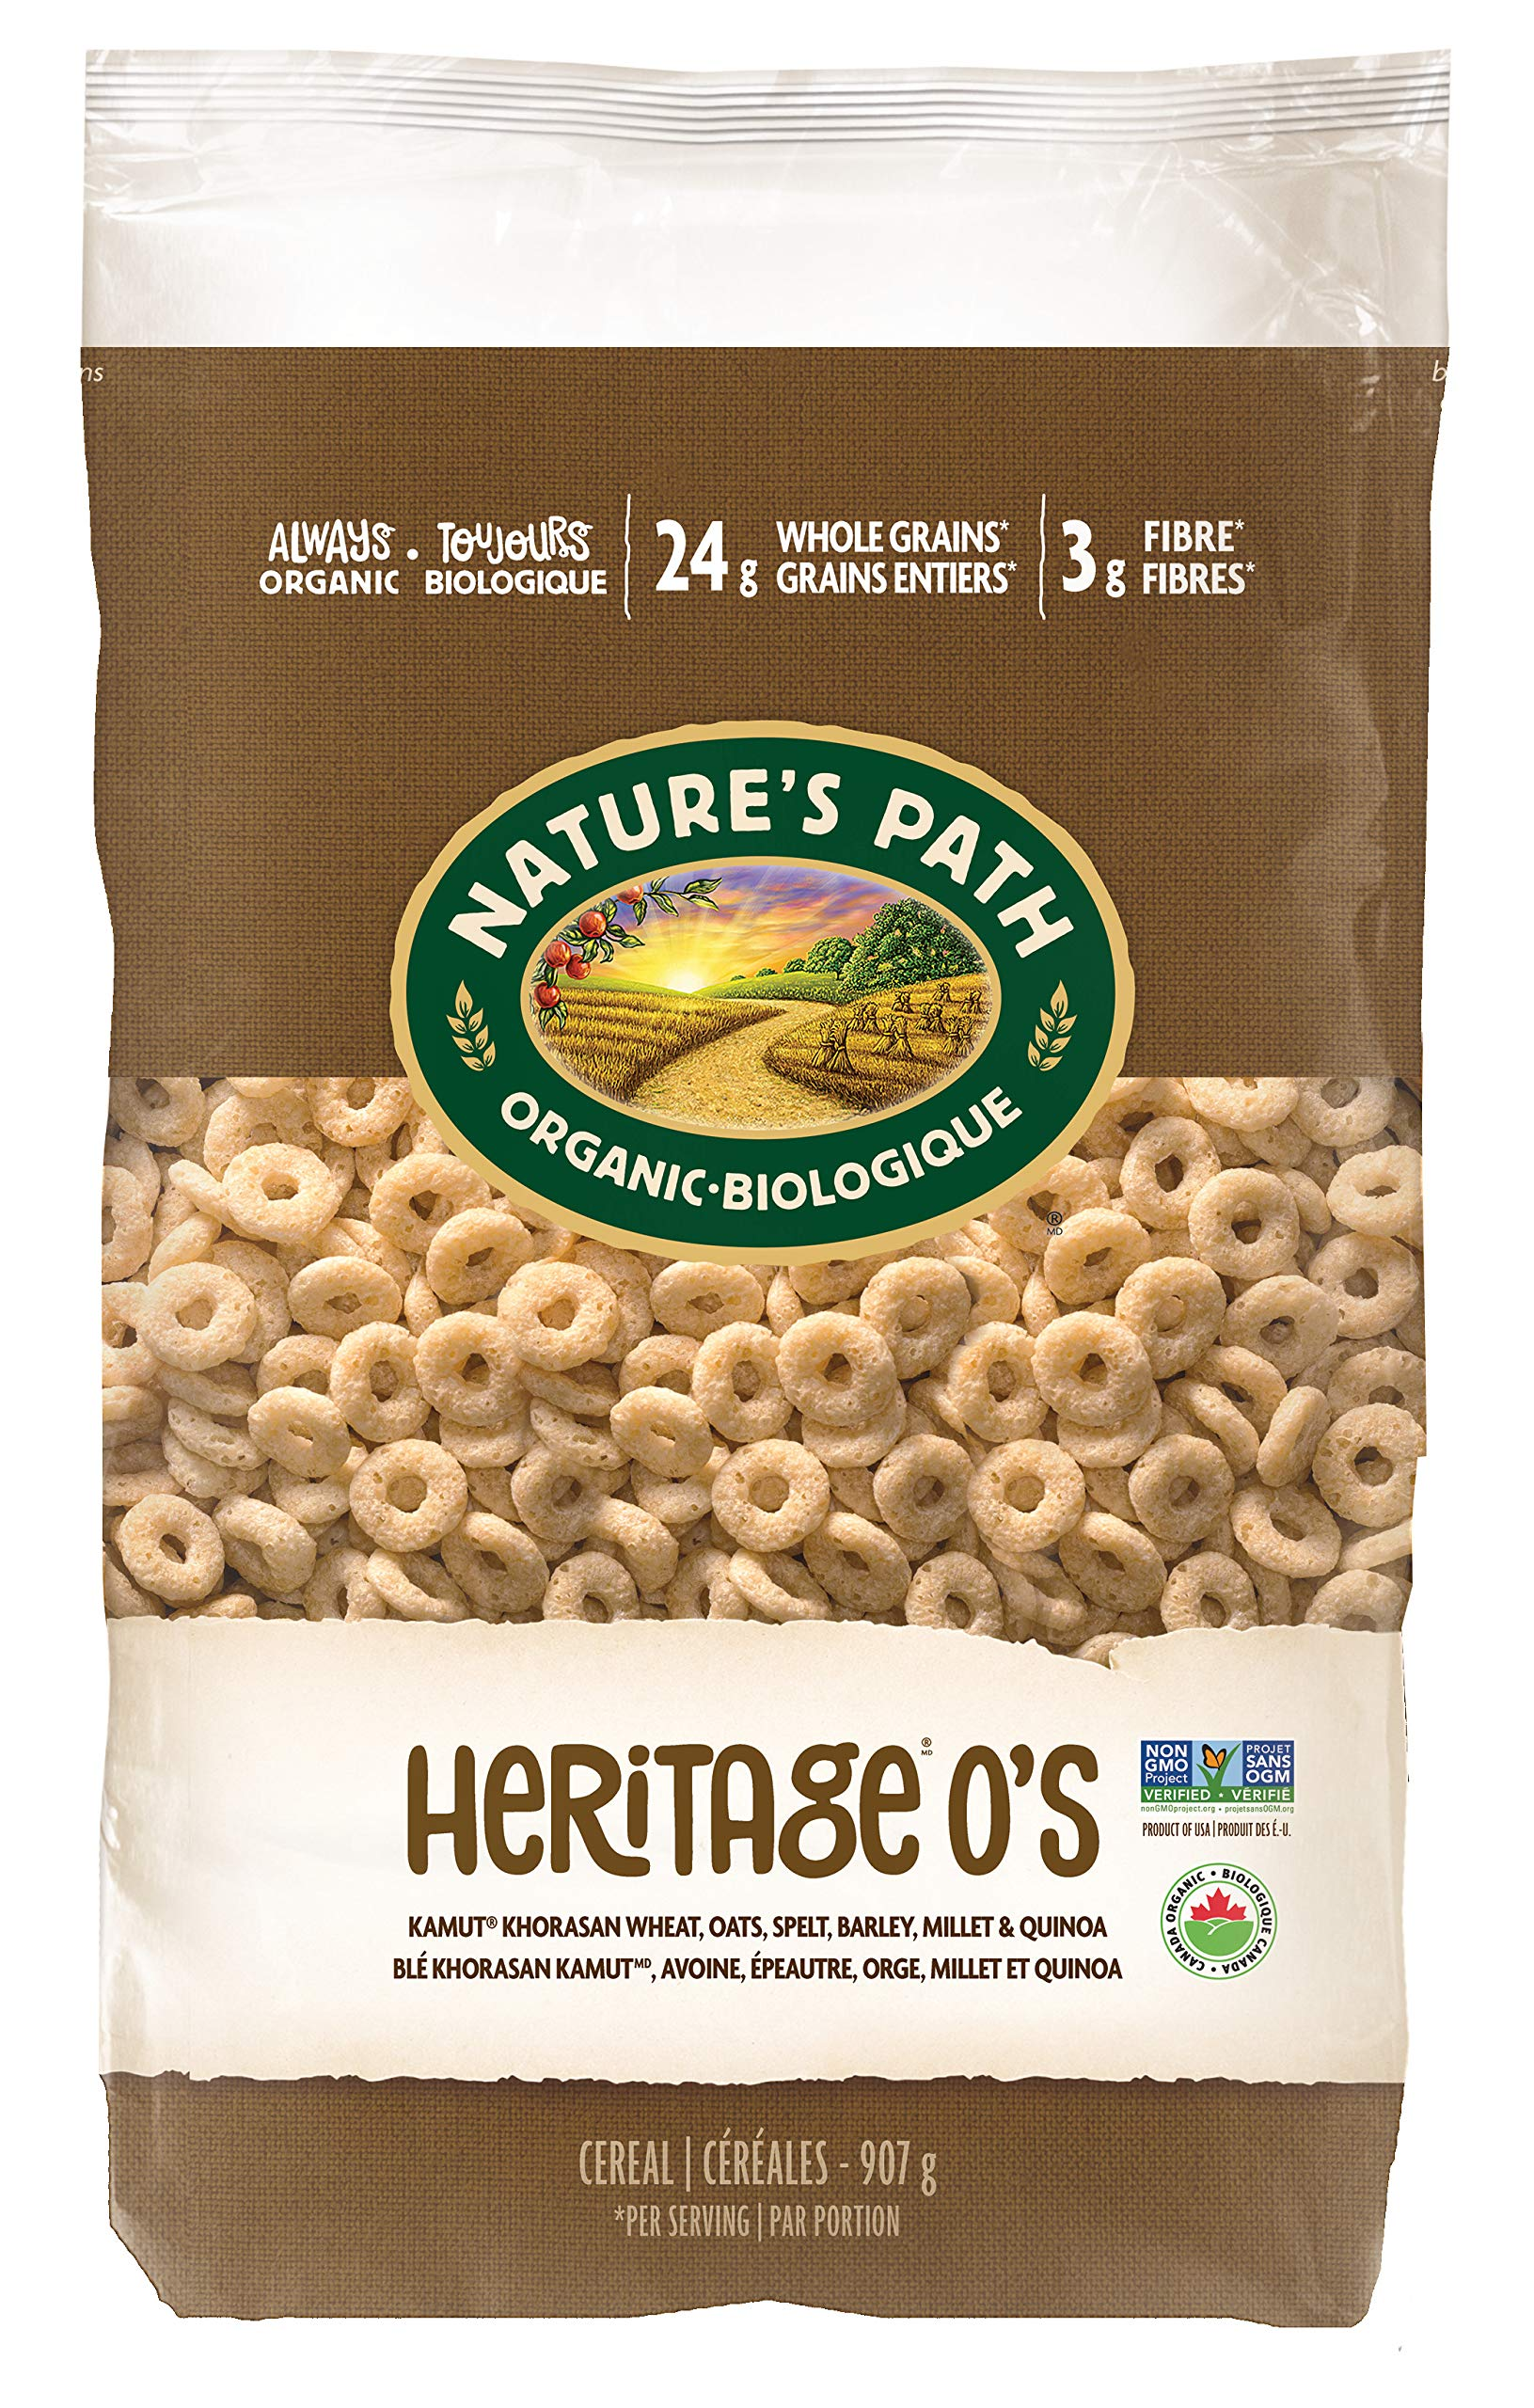 Nature's Path Heritage O's Cereal, Healthy, Organic, Low-Sugar, 32 Ounce Bag (Pack of 6) by Nature's Path